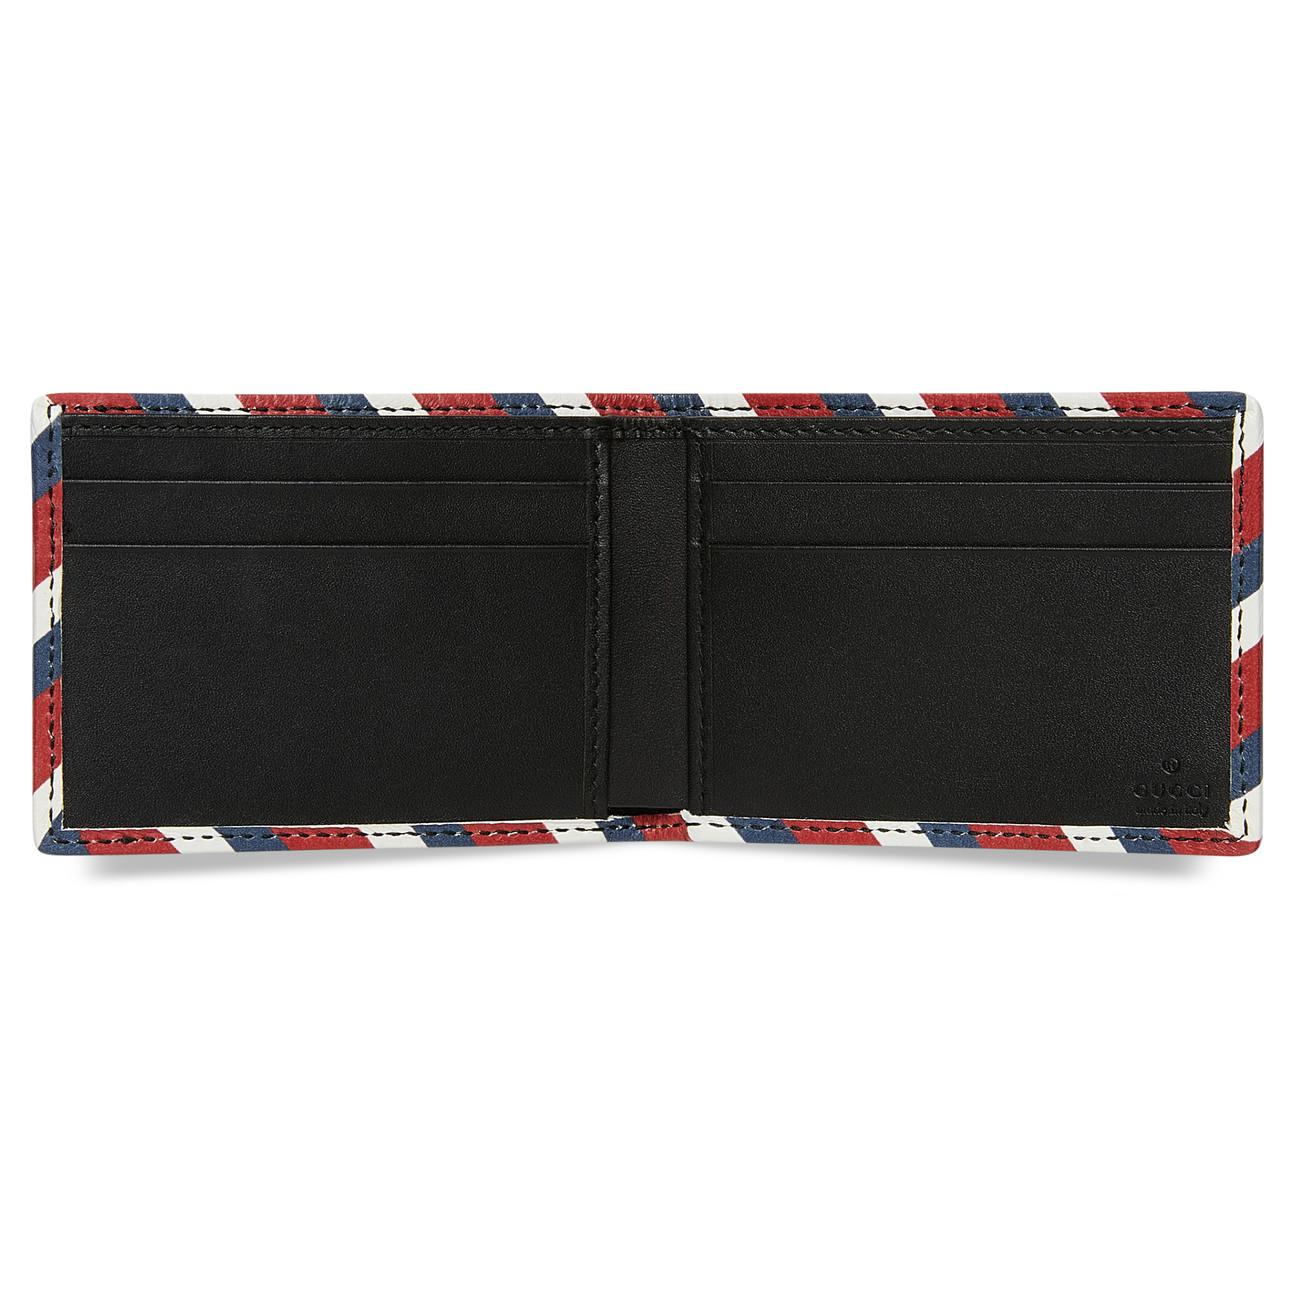 3acd052d5cb Gucci - Black Night Courrier GG Supreme Wallet for Men - Lyst. View  fullscreen